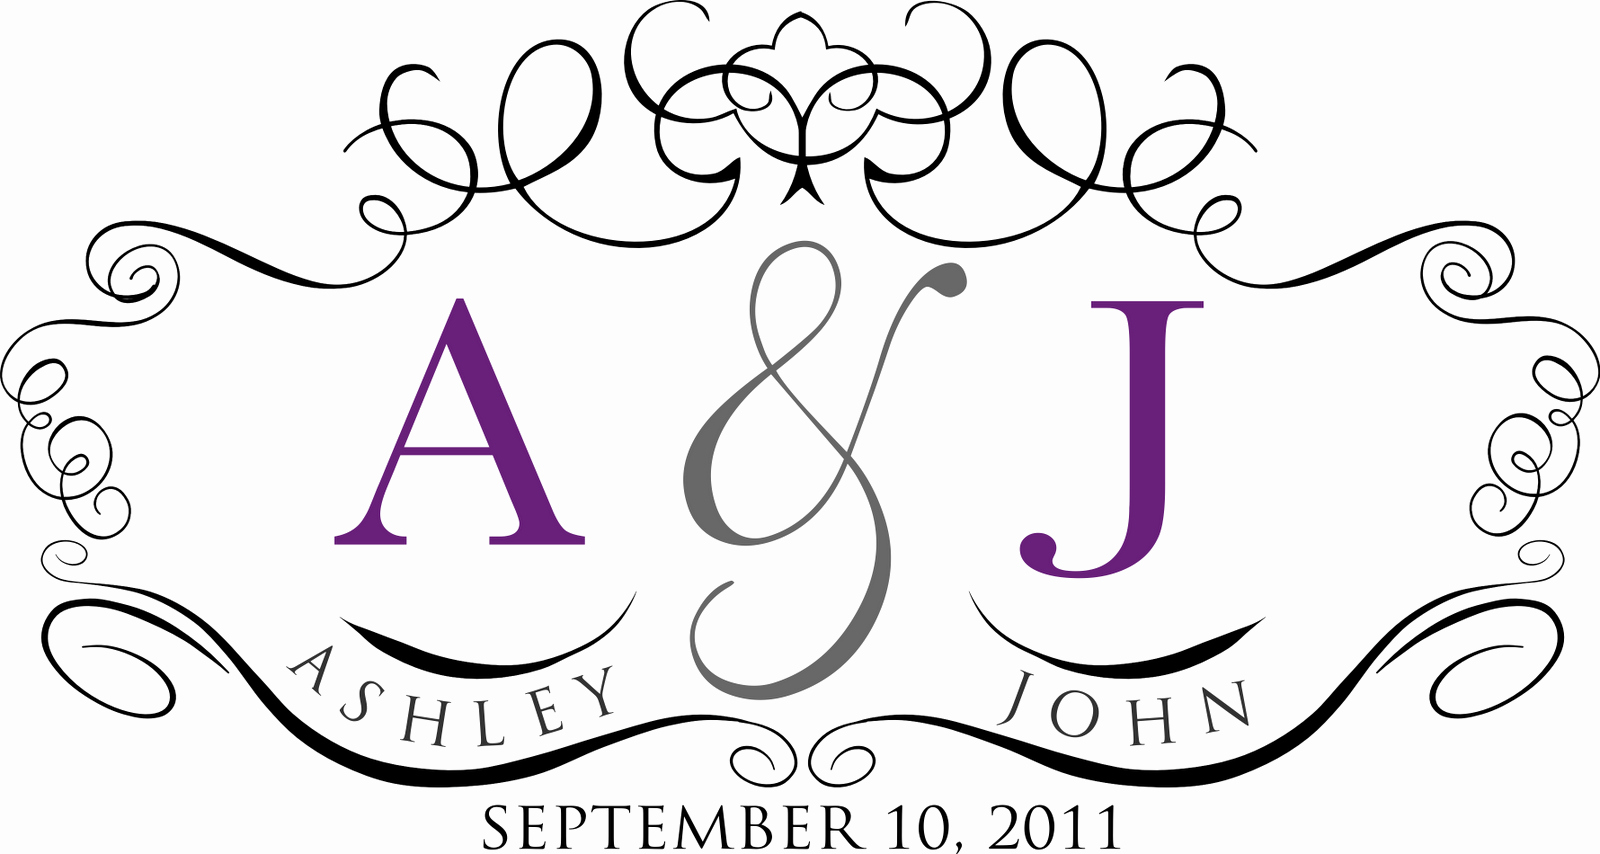 Free Wedding Monogram Template Unique the Gallery for Wedding Monogram Design Templates